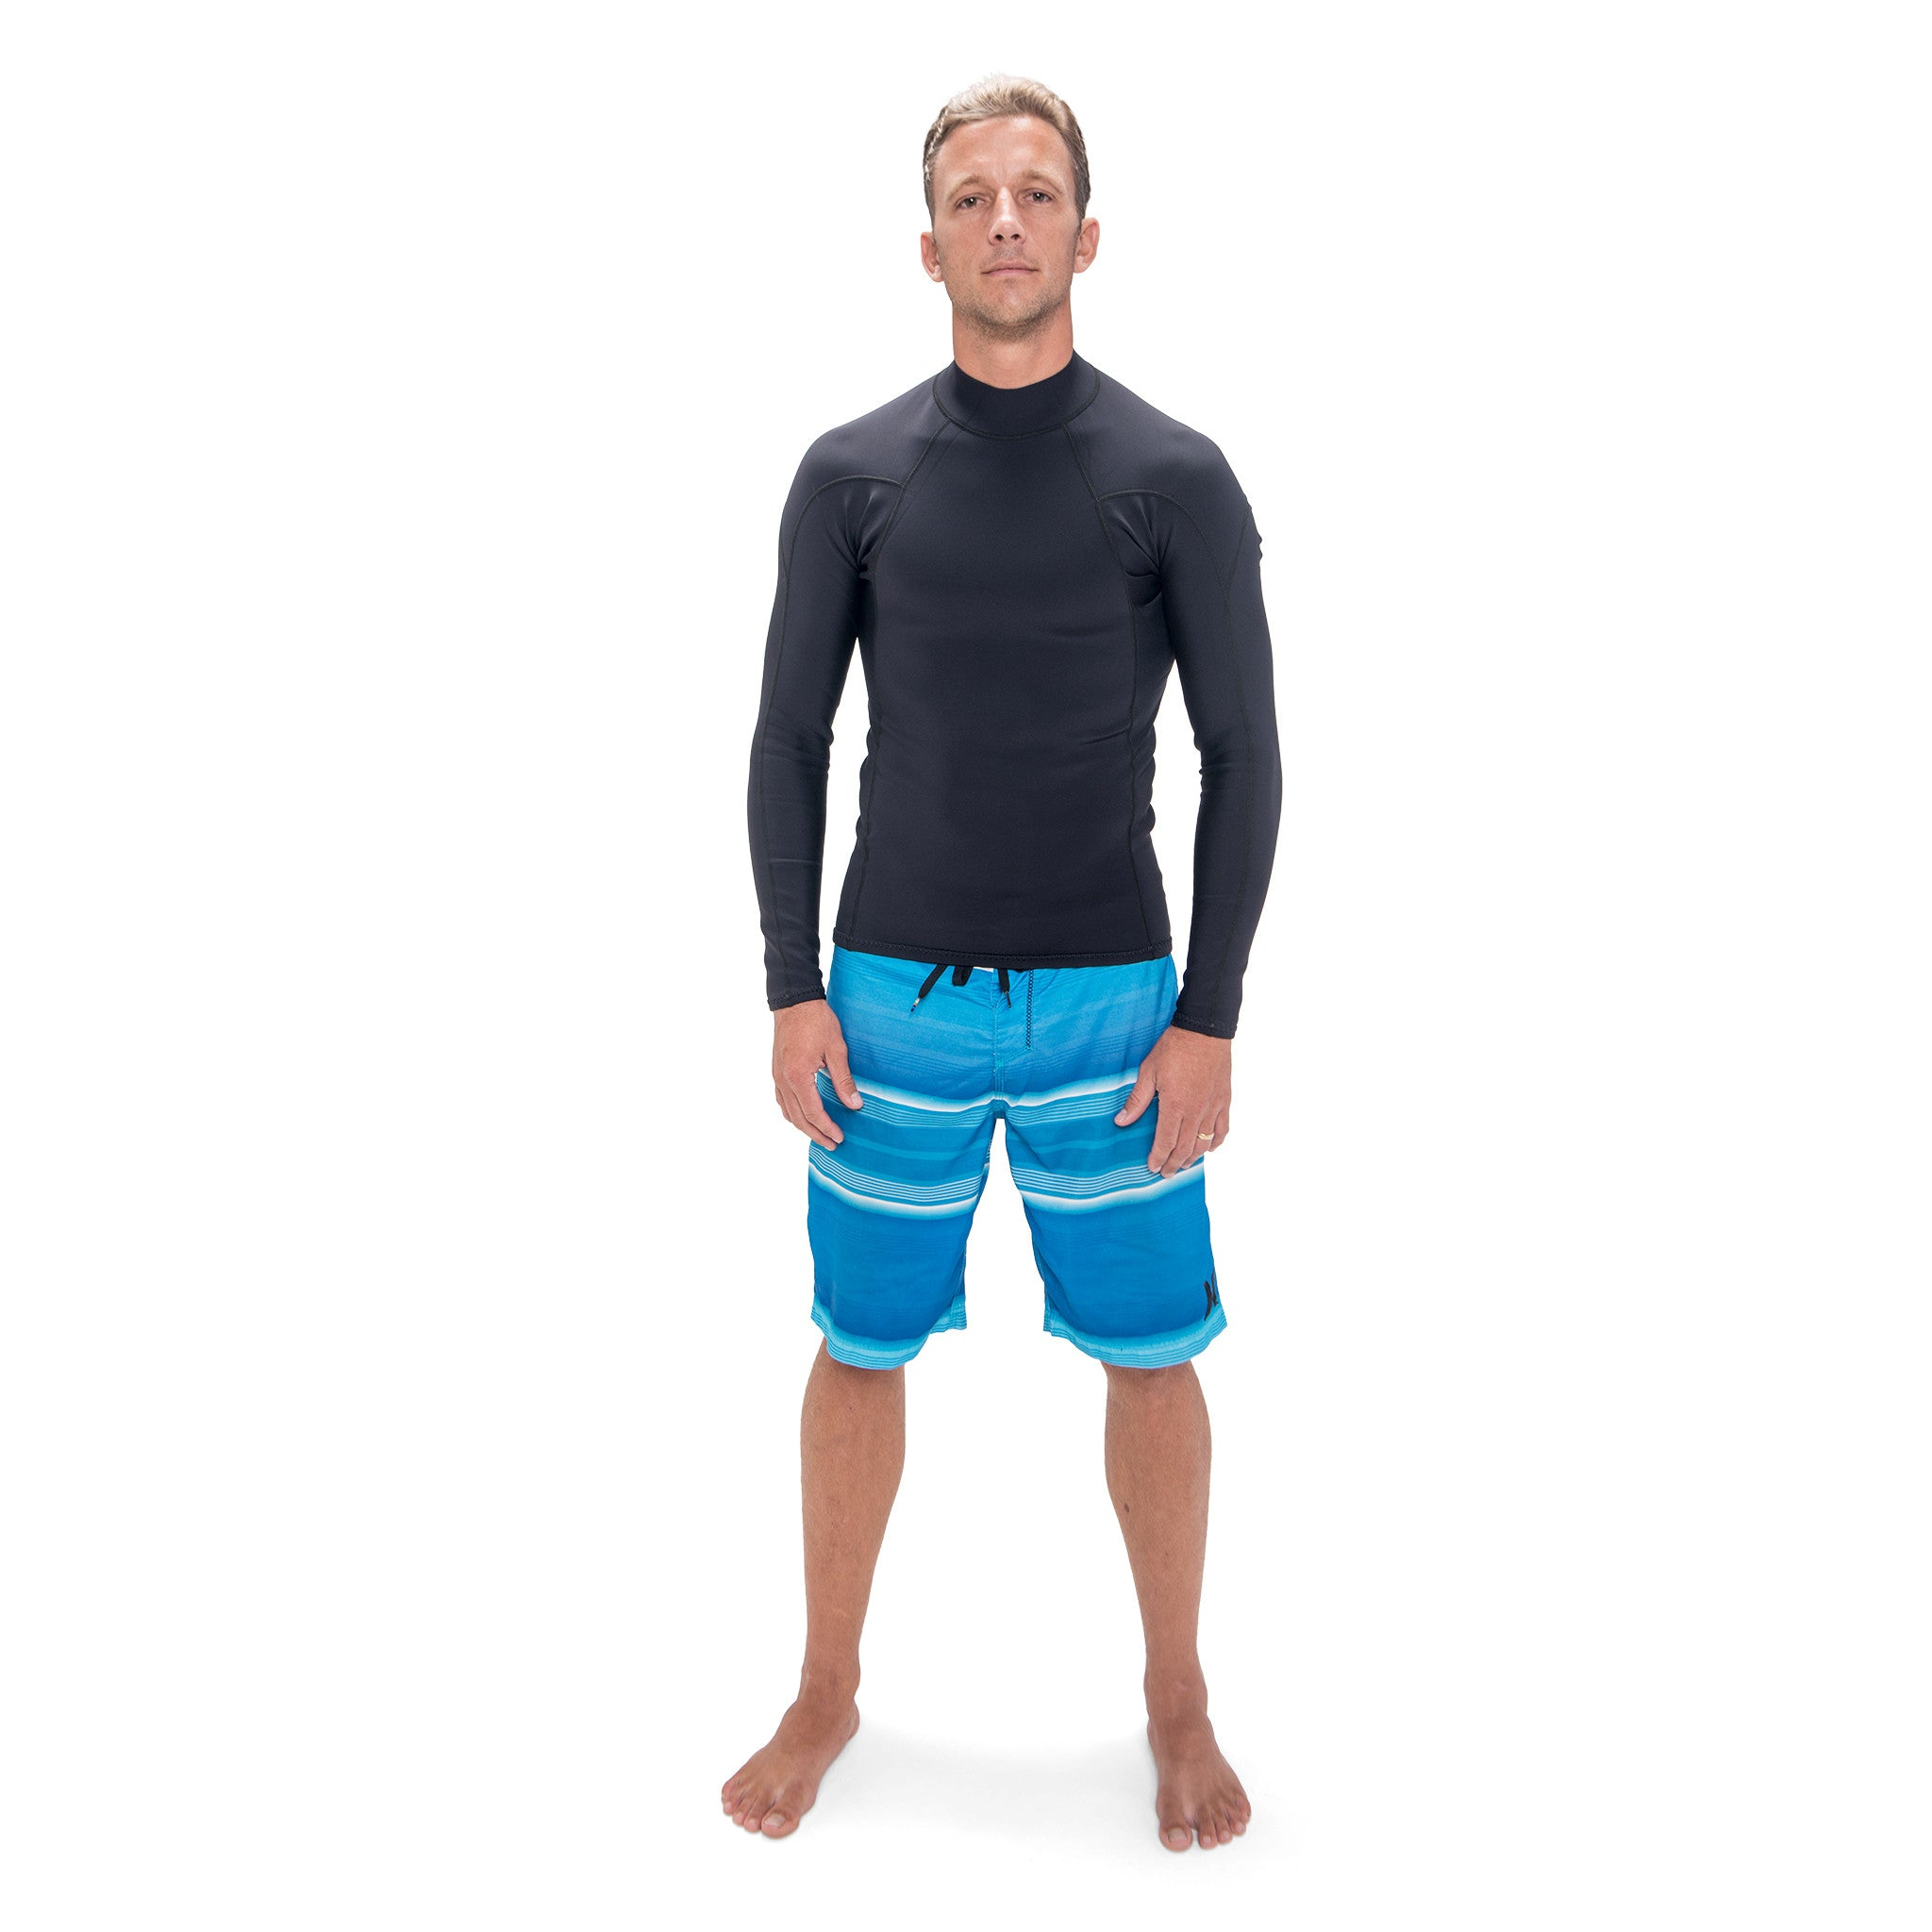 740653c44696 Groundswell Supply Custom Made Wetsuit (Spring Jacket)